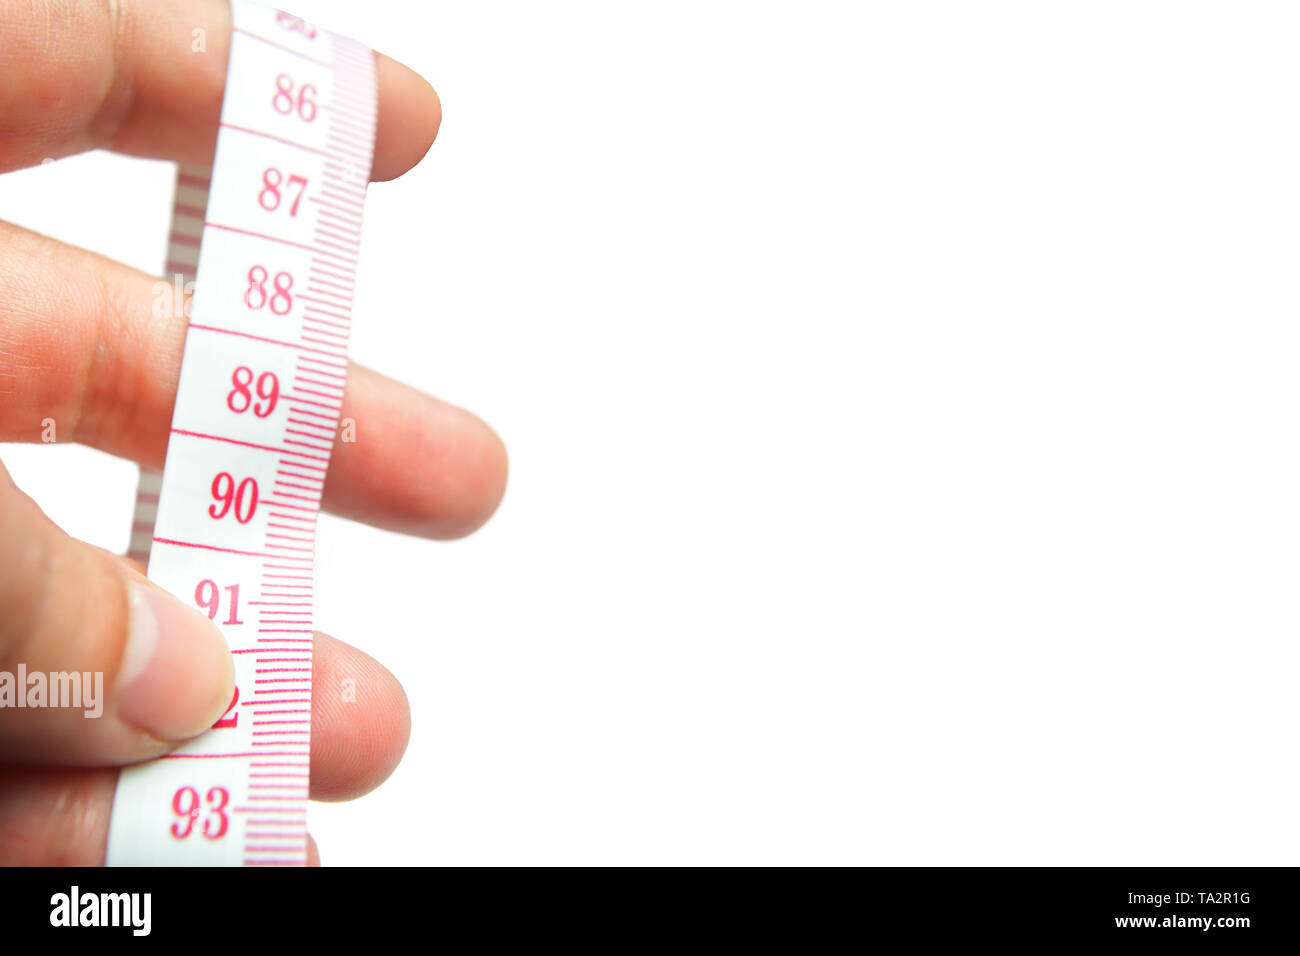 Measuring my body - Stock Image